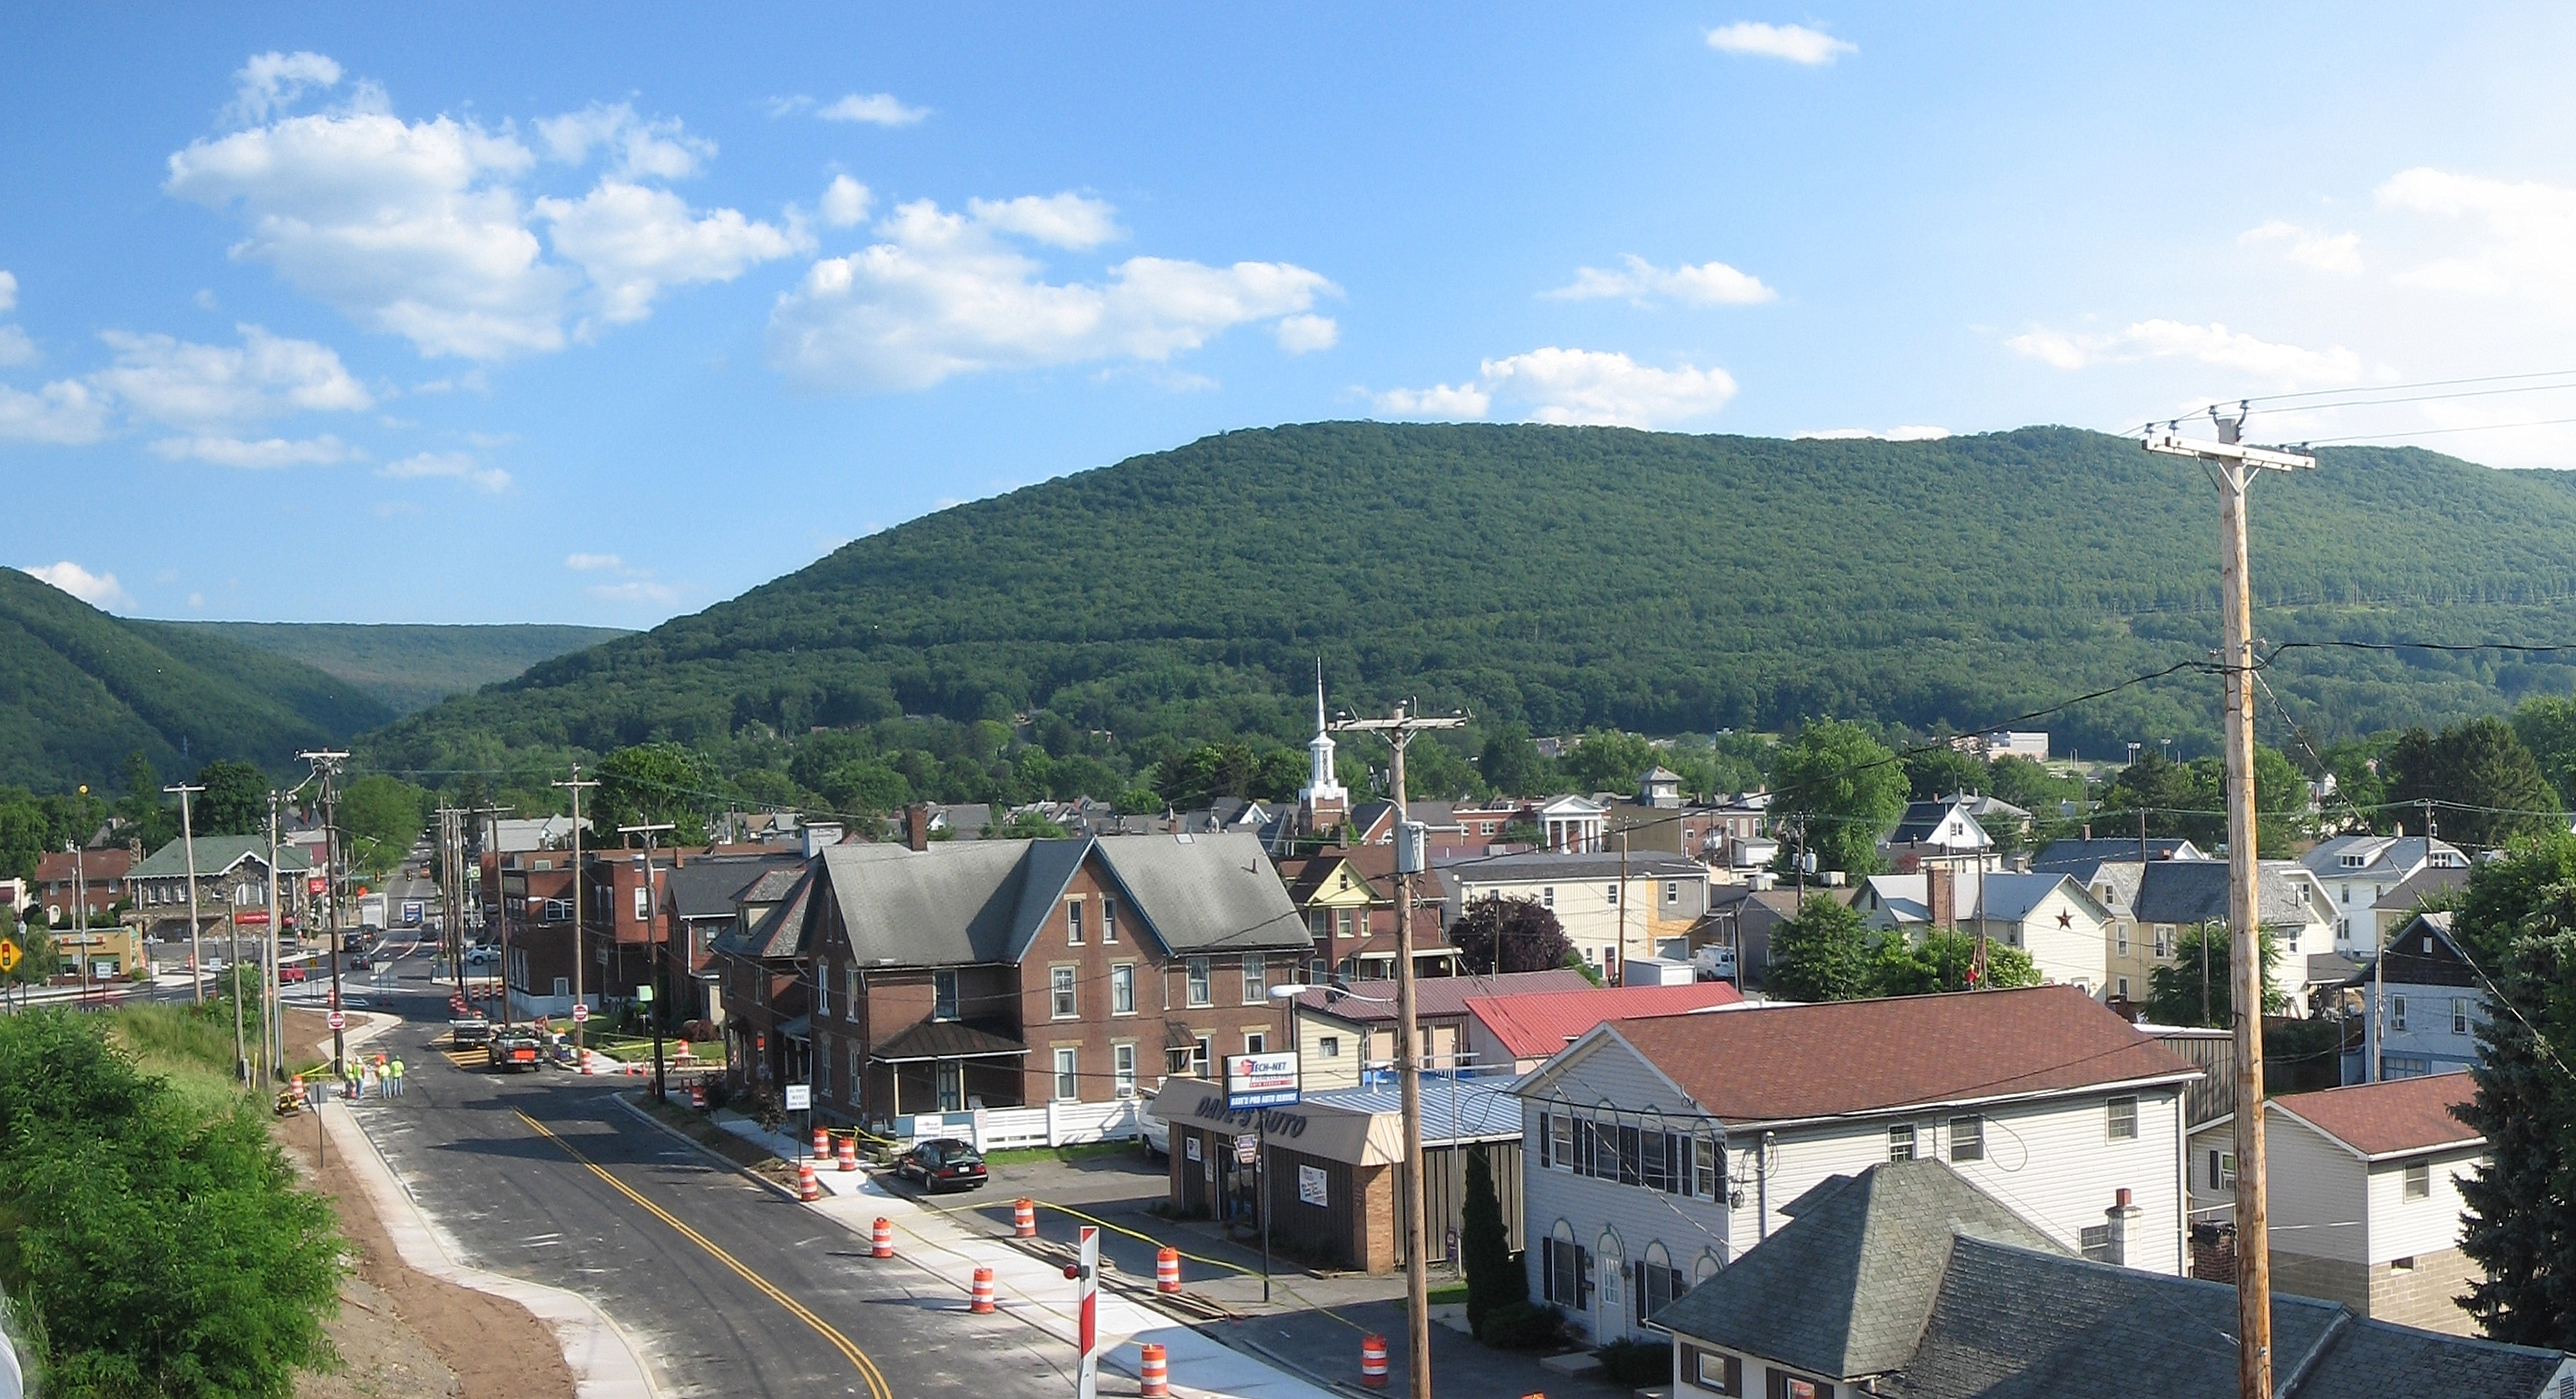 Williamsport (PA) United States  city photos gallery : image caption A view of South Williamsport with